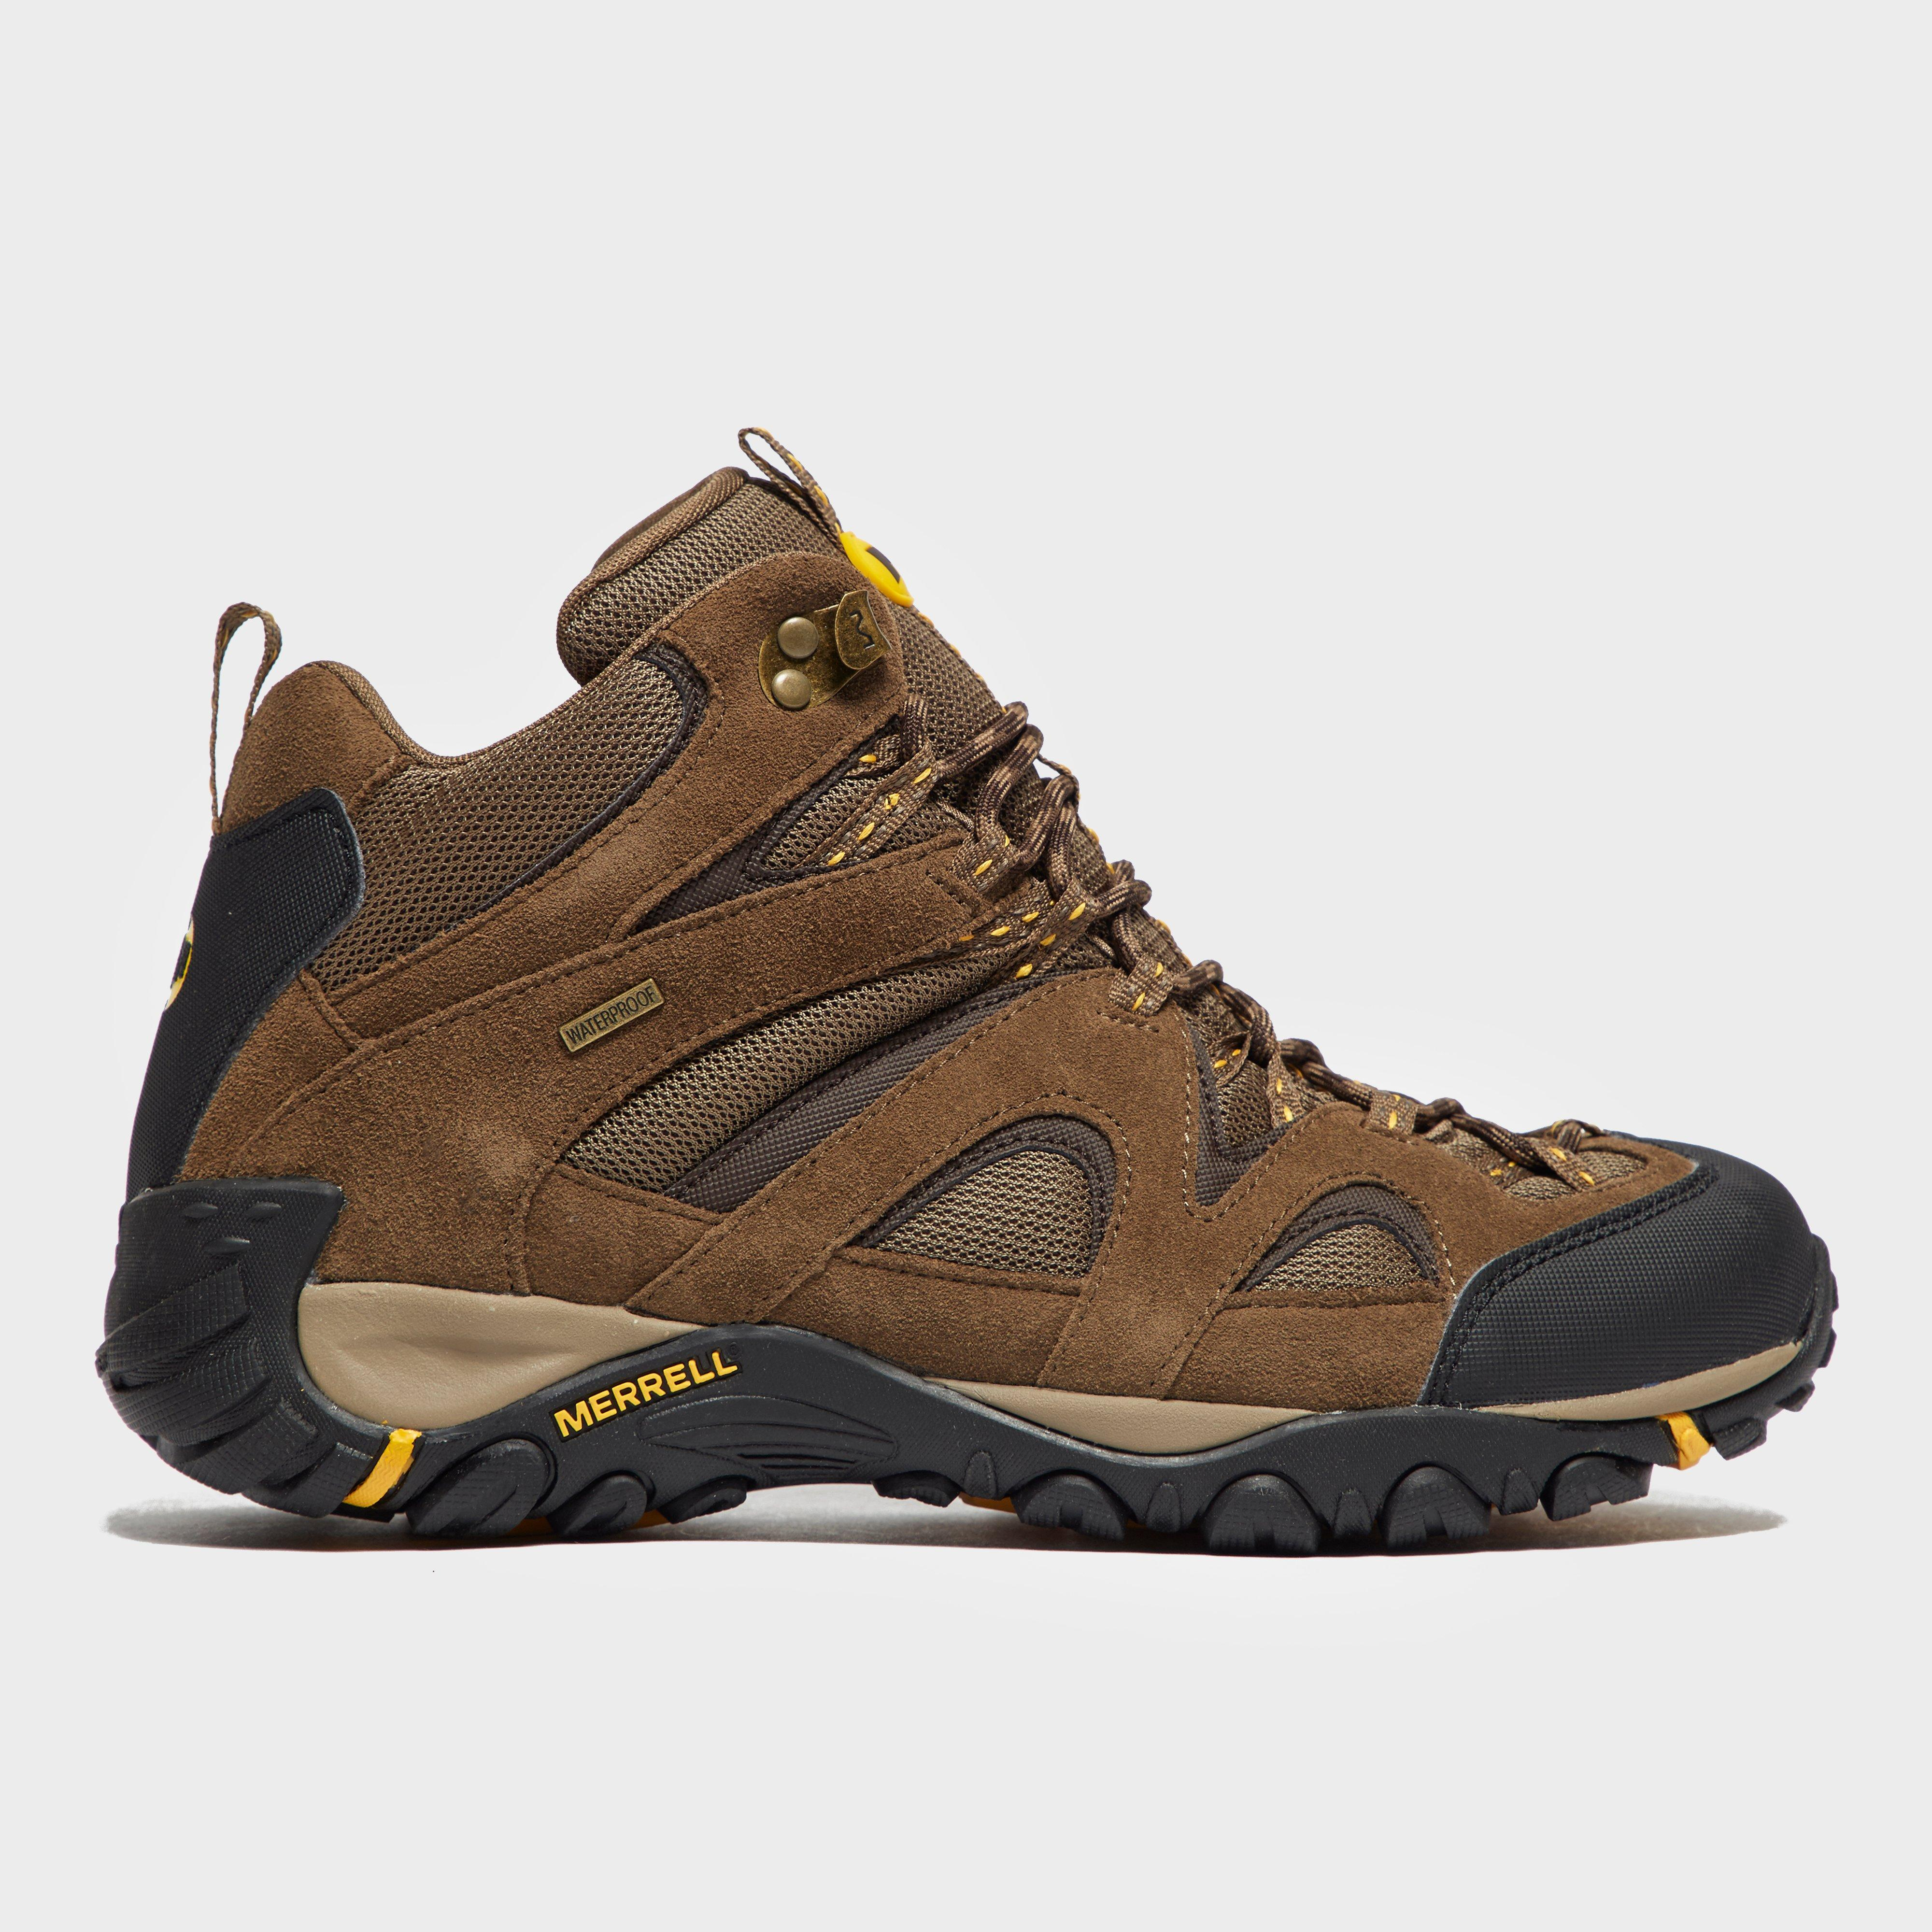 315dc2256b6 Details about New Merrell Men s Energis Mid Walking Boot Walking Boots